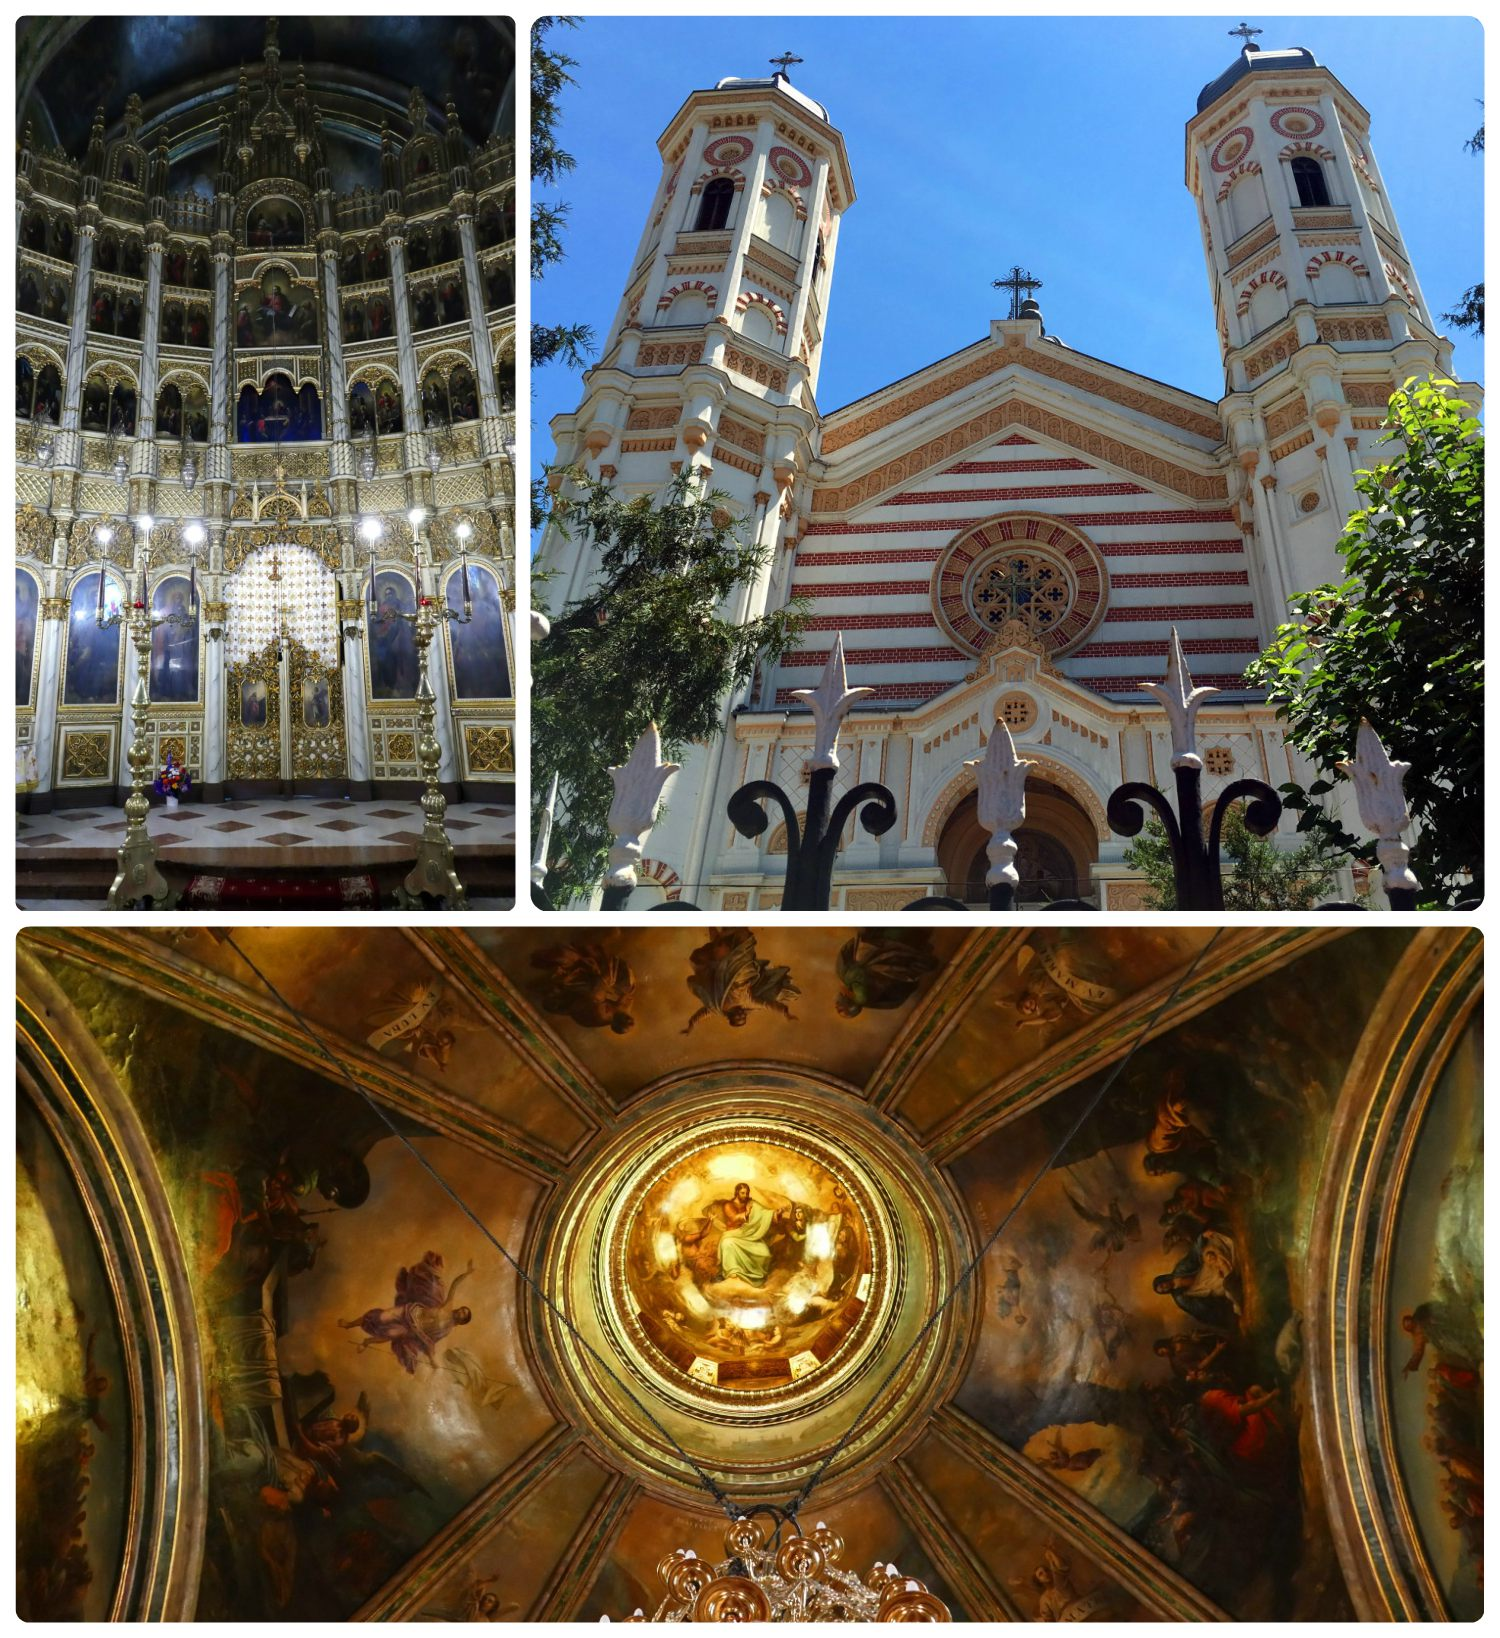 During our visit, Saint Spyridon The New Church was under renovation, however, what we were able to see was quite beautiful. In particular, the golden dome had murals that beg visitors to look up.